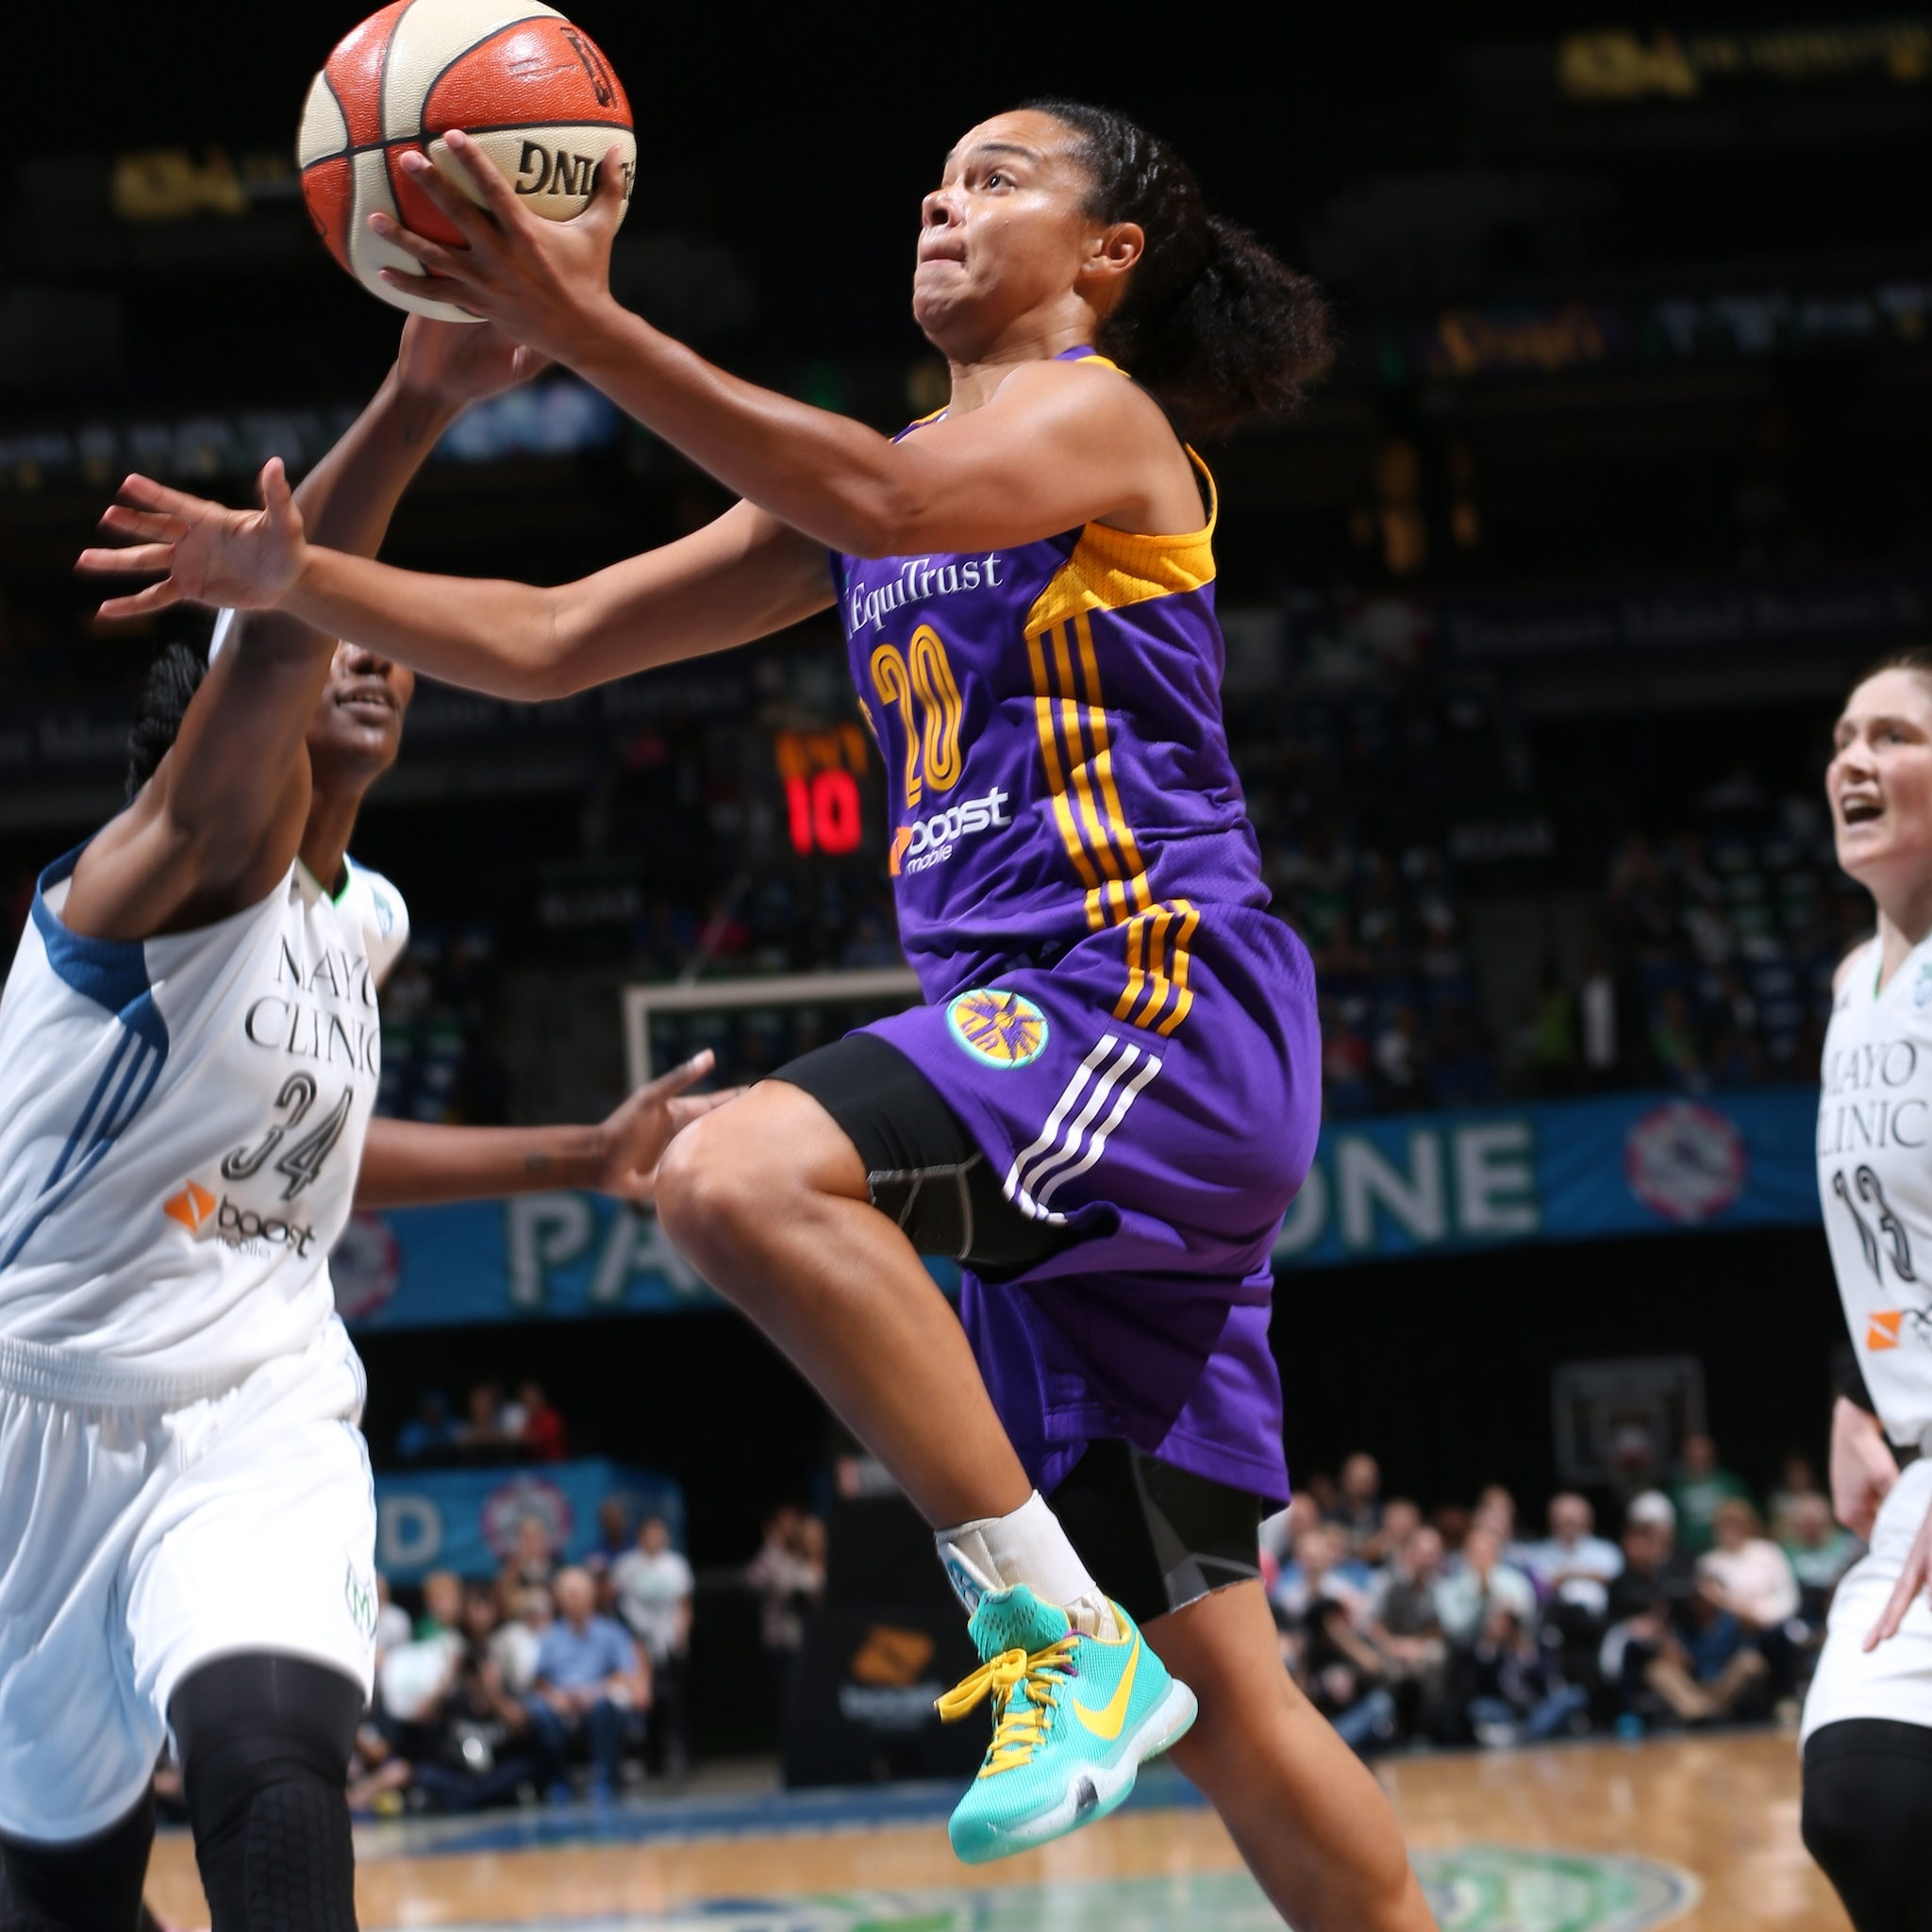 MINNEAPOLIS, MN - SEPTEMBER 18:  Kristi Toliver #20 of the Los Angeles Sparks drives to the basket against the Minnesota Lynx during Game 1 of the 2015 WNBA Western Conference Semifinal on September 18, 2015 at Target Center in Minneapolis, Minnesota.  NOTE TO USER: User expressly acknowledges and agrees that, by downloading and or using this Photograph, user is consenting to the terms and conditions of the Getty Images License Agreement. Mandatory Copyright Notice: Copyright 2015 NBAE (Photo by David Sherman/NBAE via Getty Images)